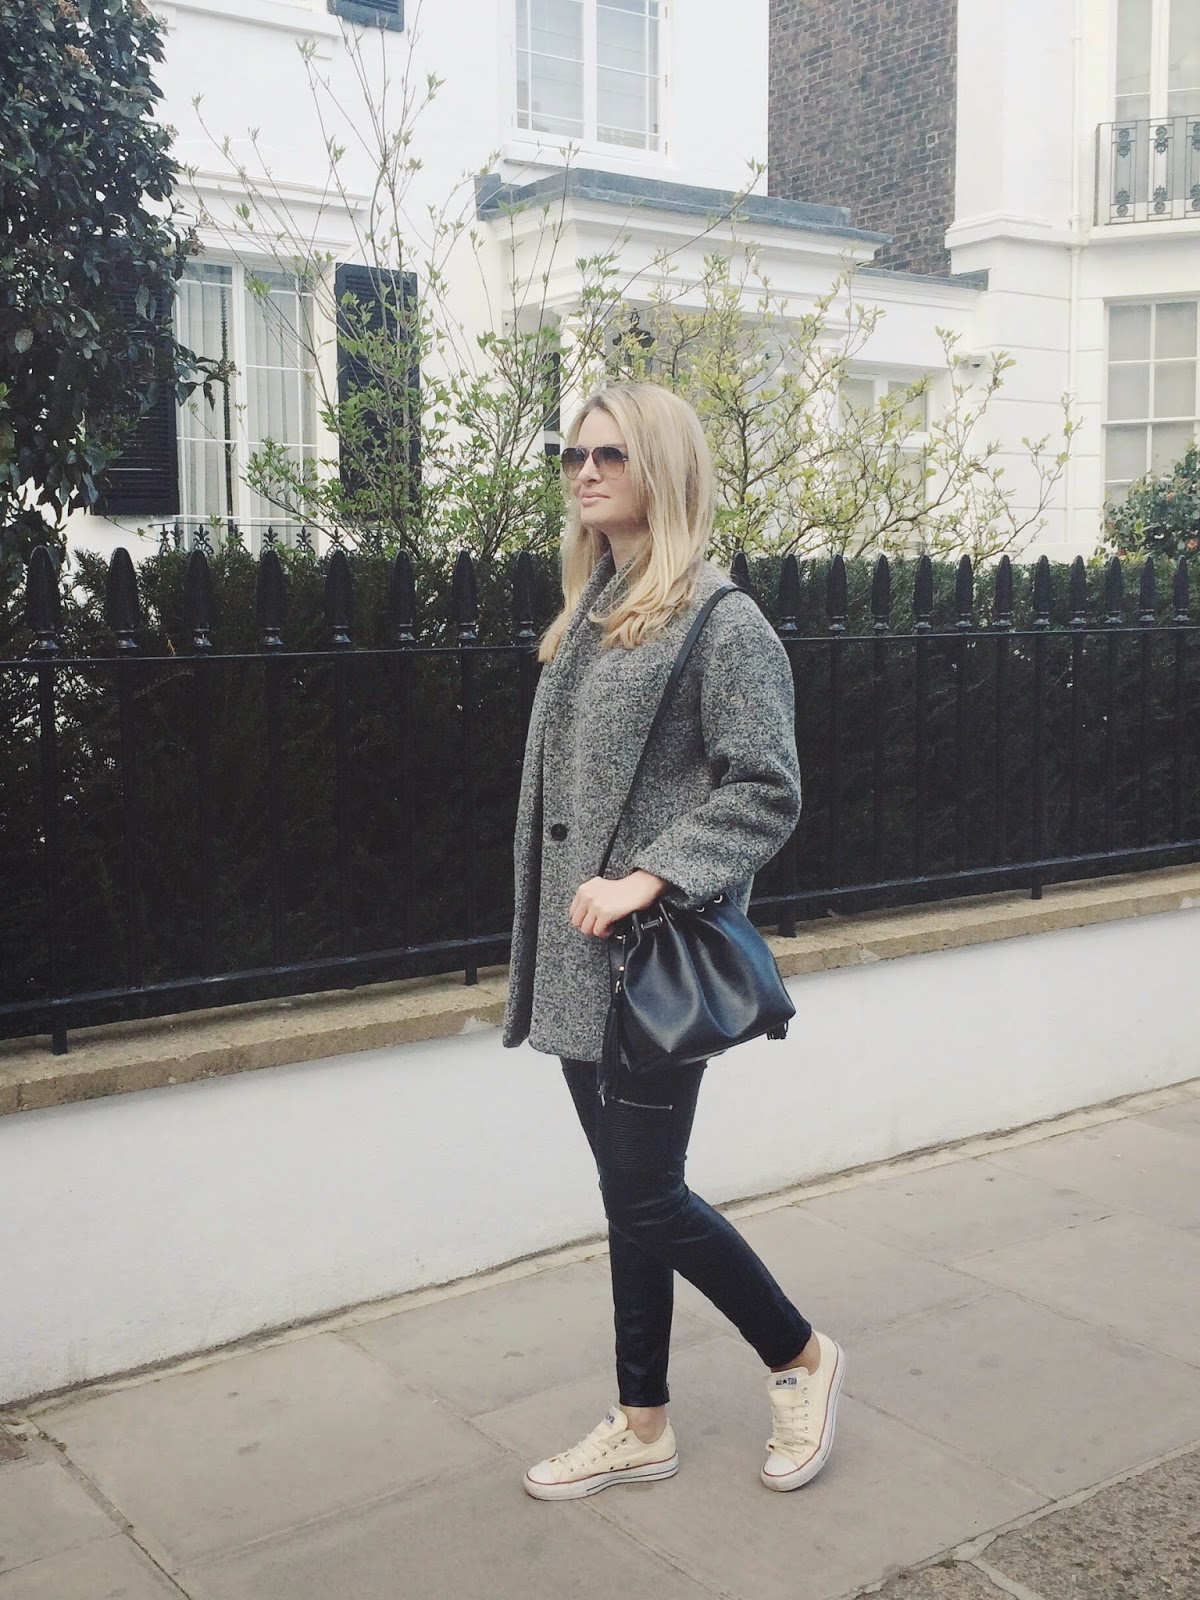 bucket bag, duffle coat, leather pants, grey coat, converse, streeststyle, london blogger